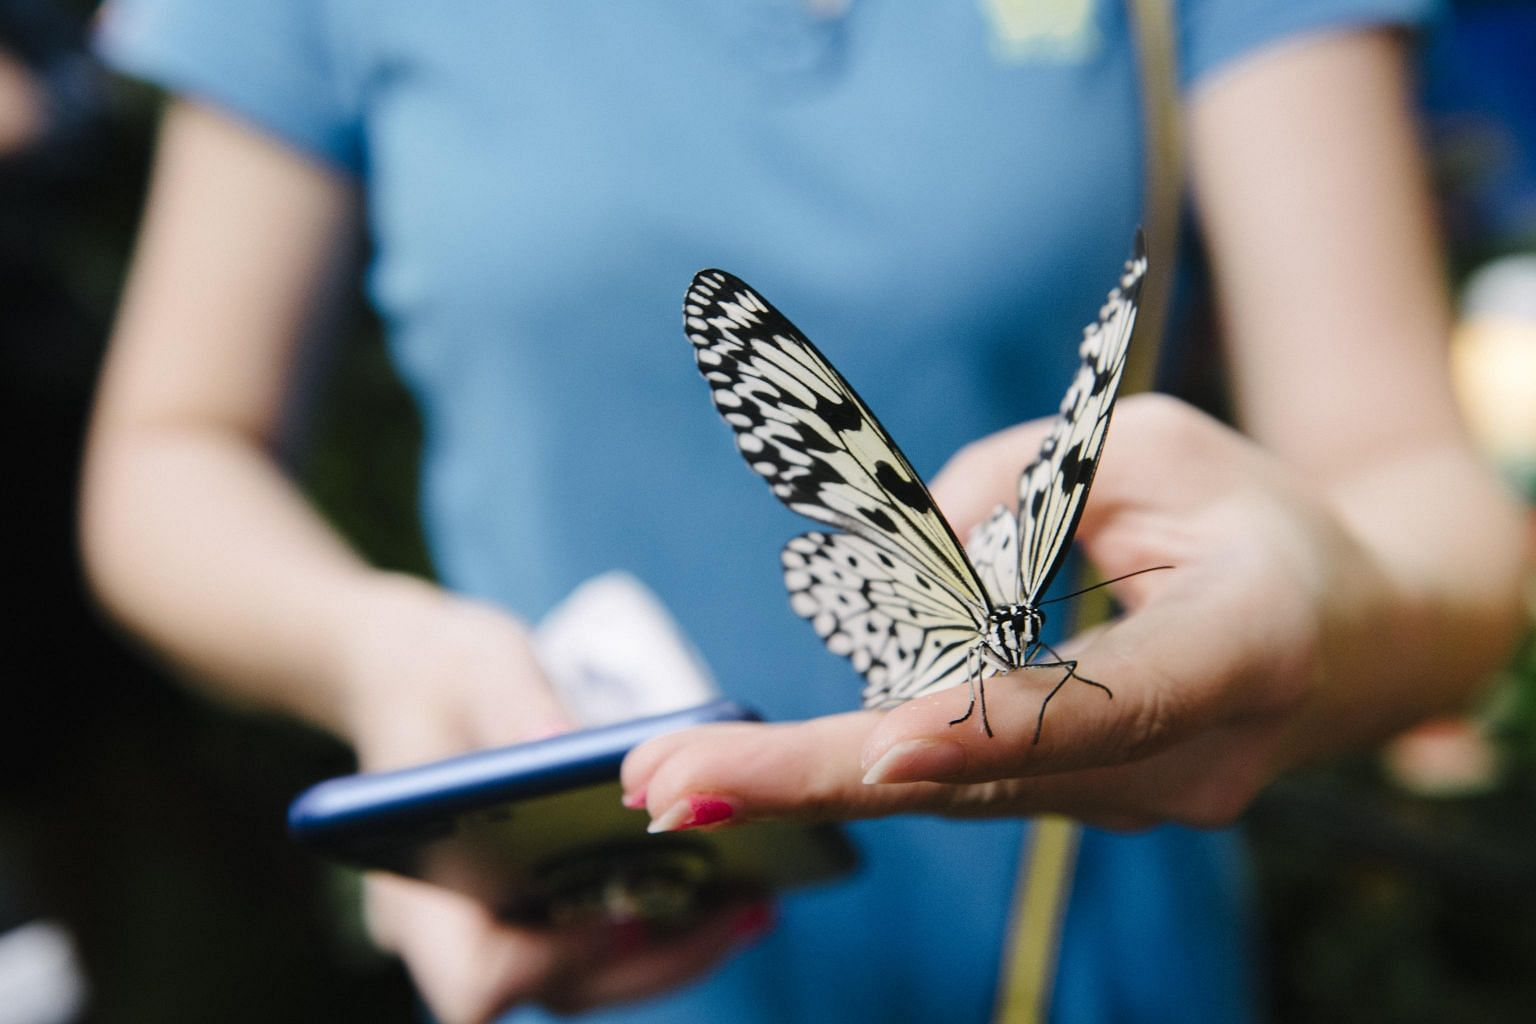 Exotic Butterflies Will Be All Aflutter At Indoor Exhibit Tiket Butterfly Park Insect Kingdom Harbourfront Centre Singapore News Top Stories The Straits Times